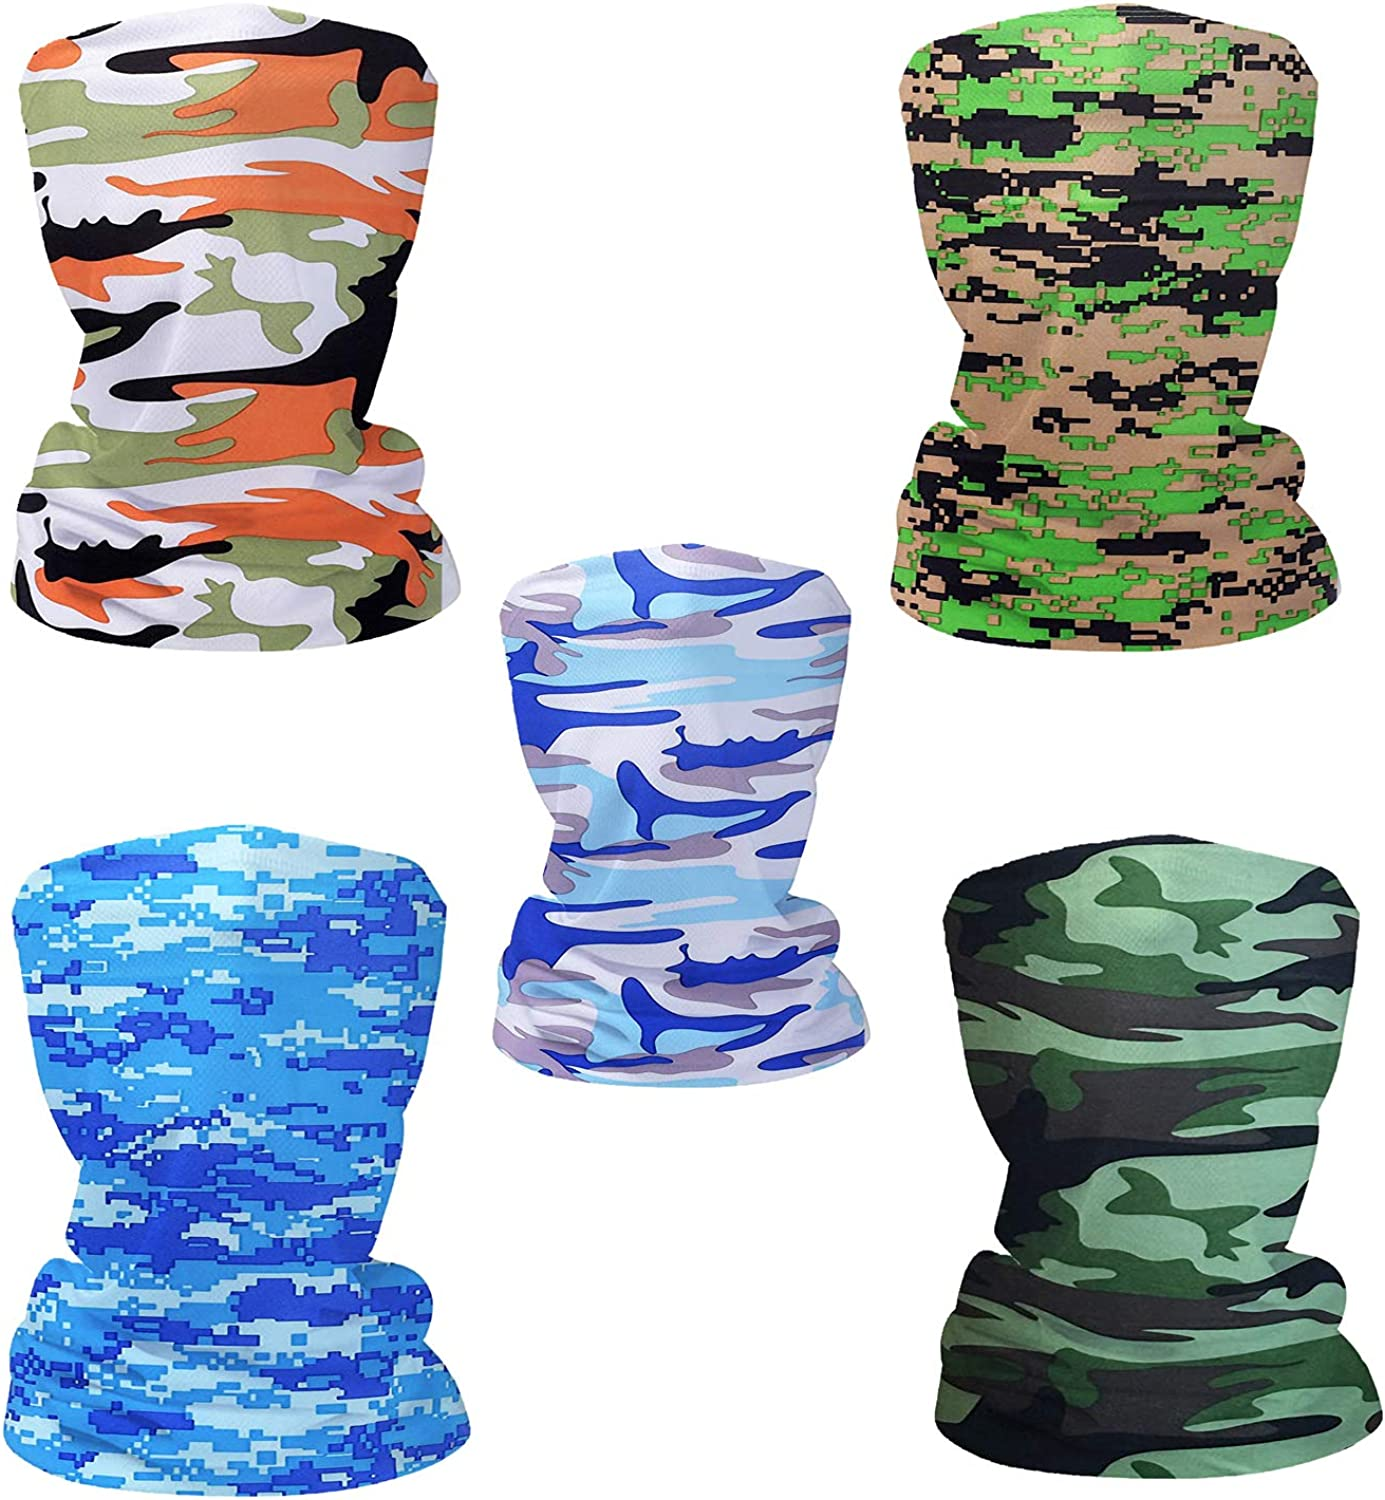 Fashion Face Dust Mask (5 PCS) Bandanas Sports & Casual Headwear Seamless Neck Gaiter, Headwrap, Balaclava, Helmet Liner